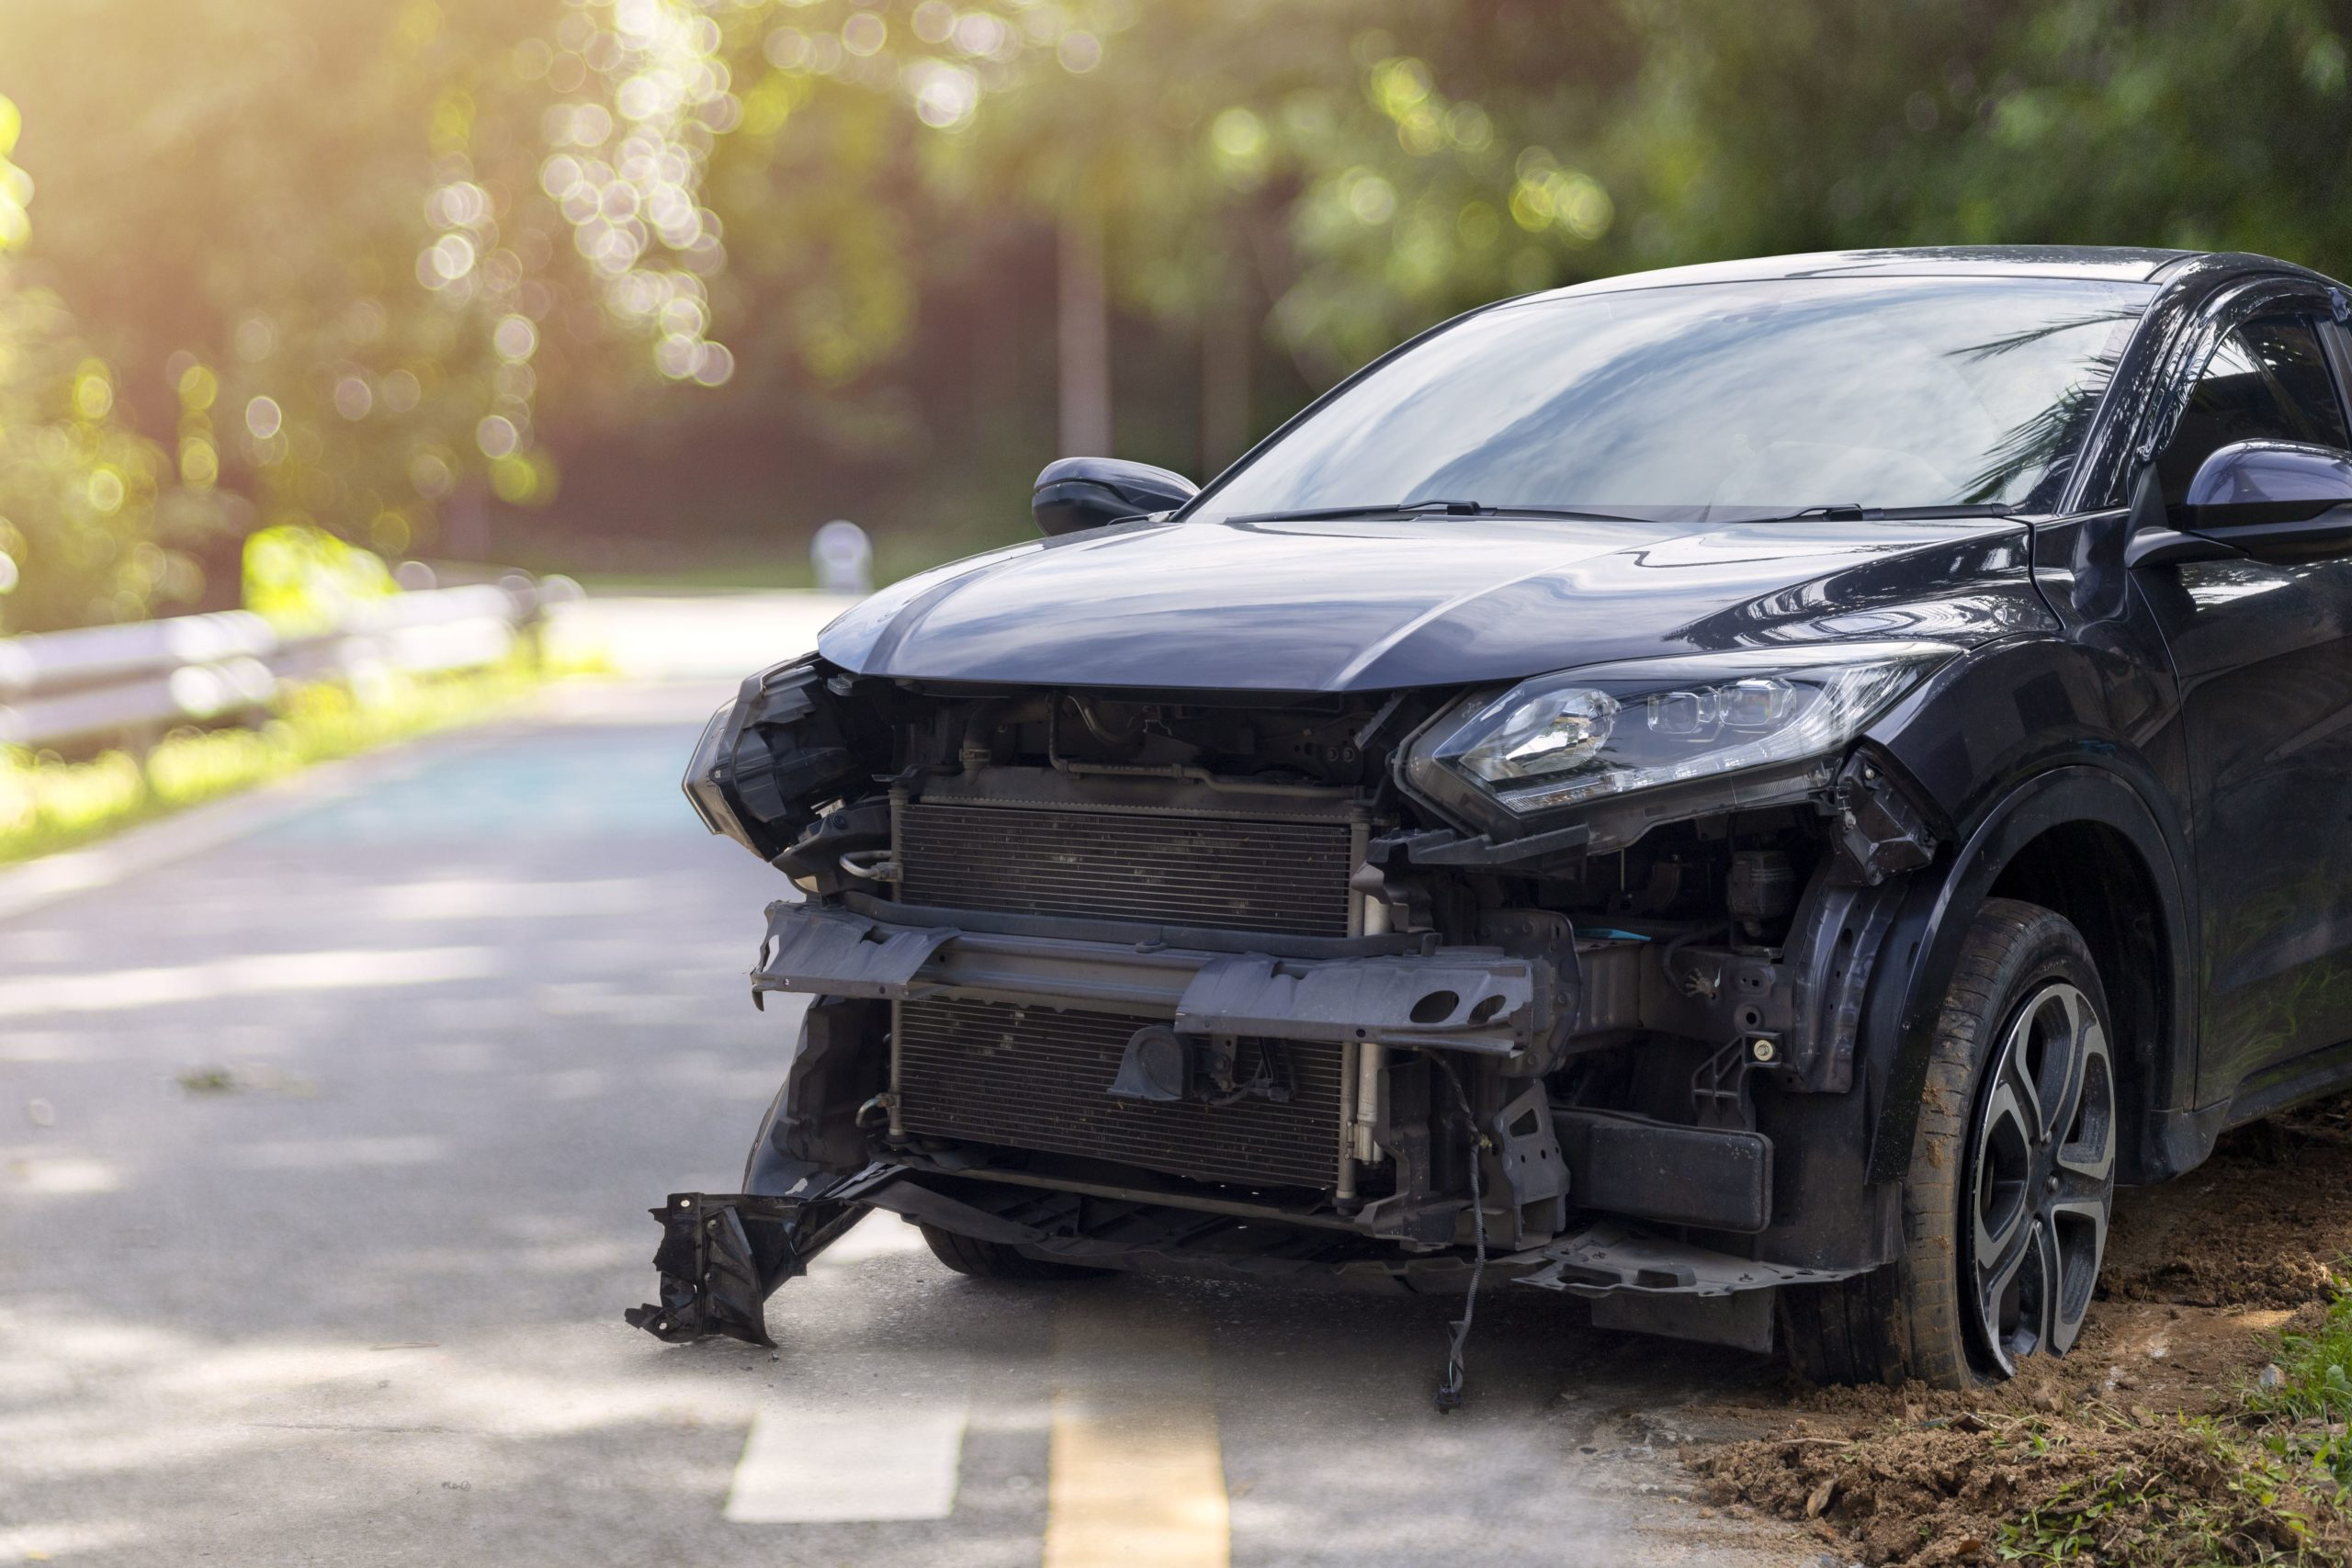 black car on side of road with damaged front